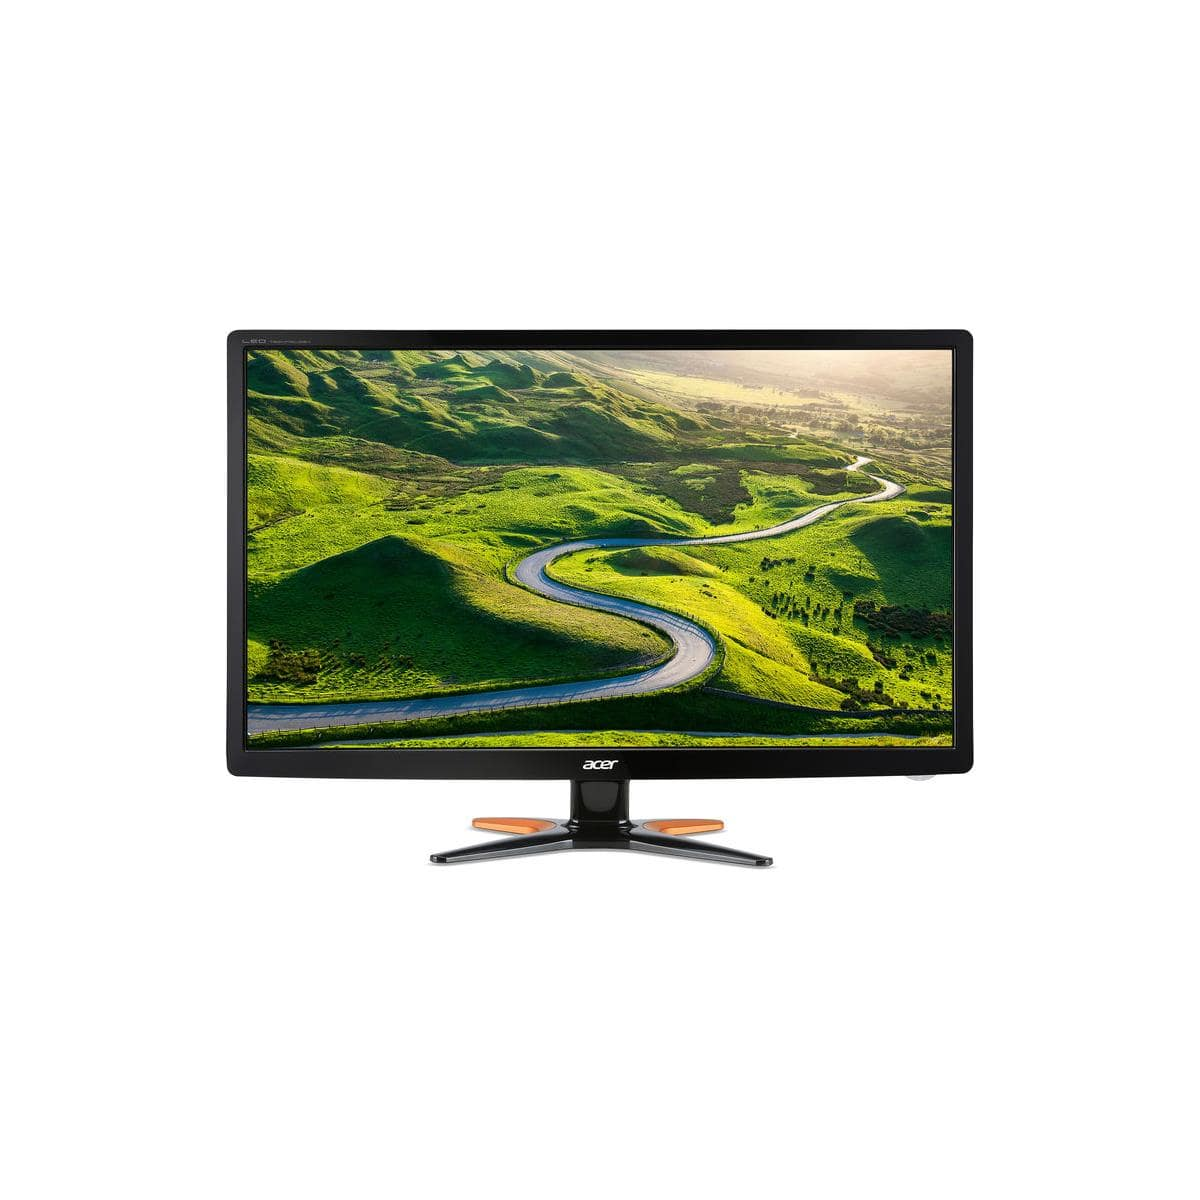 "27"" Acer GN276HL bid 3D 1080p Monitor $260 + free s/h"